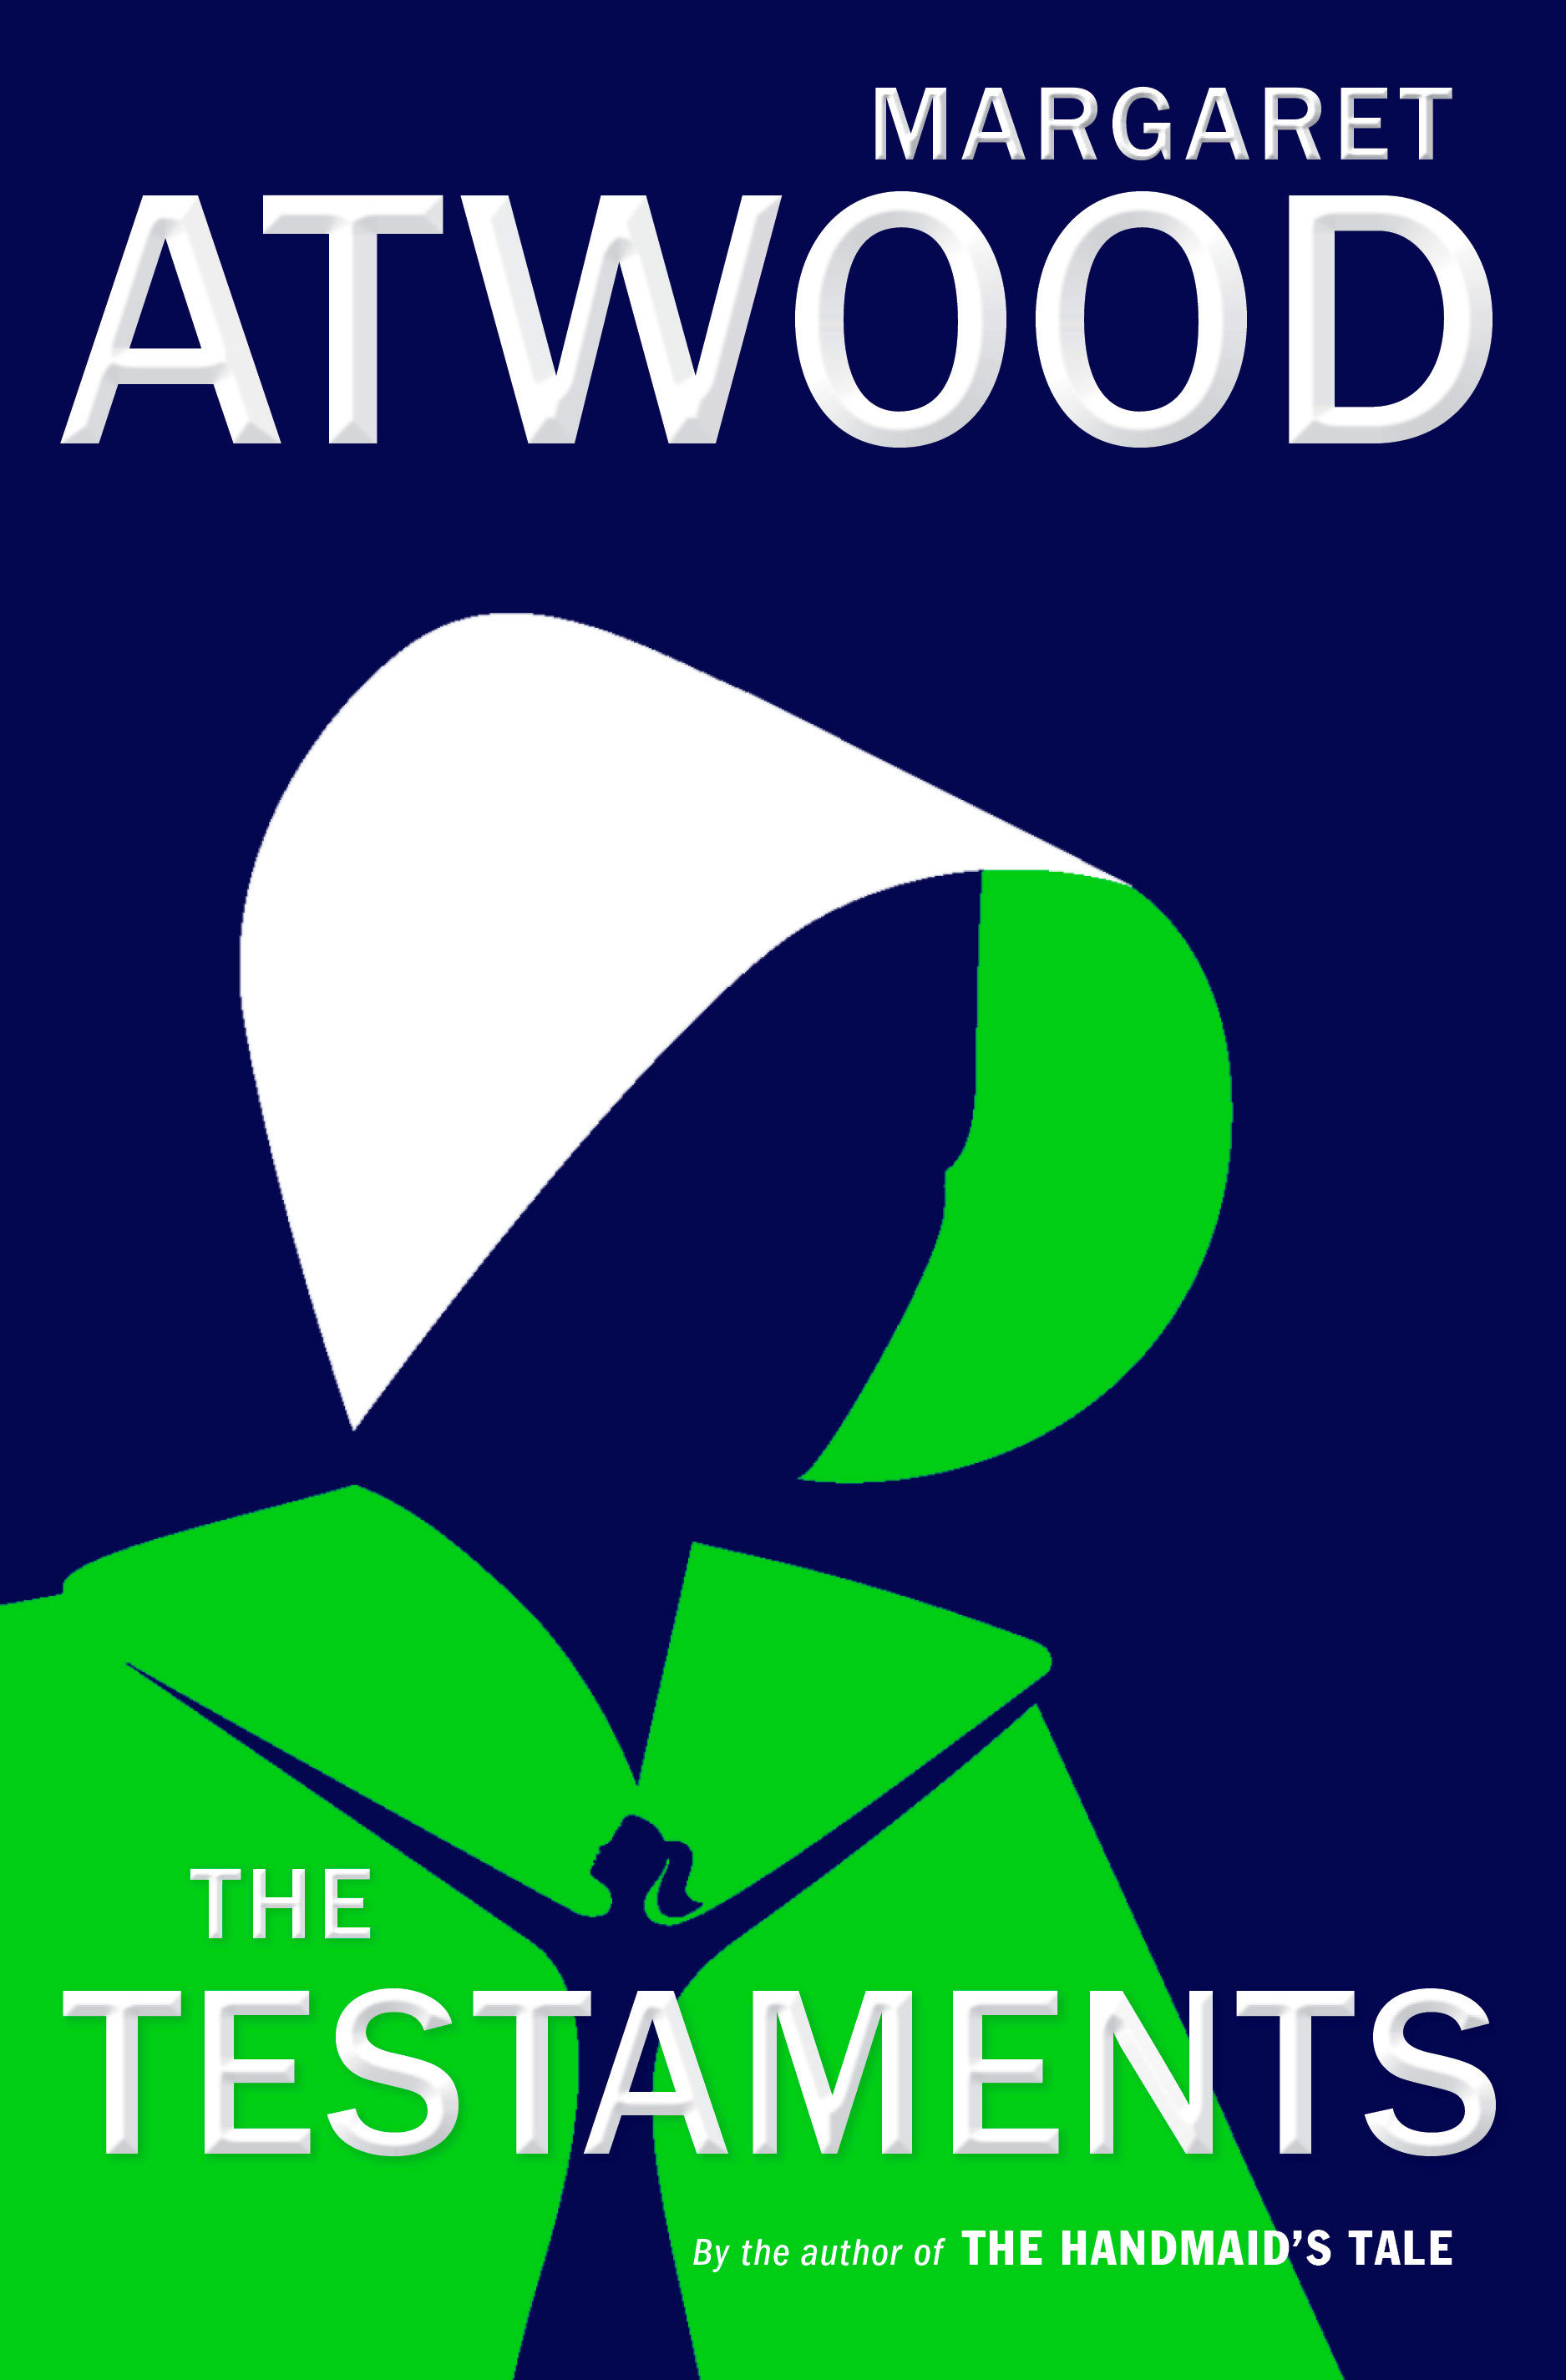 The Handmaid's Tale 2 -  Margaret Atwood